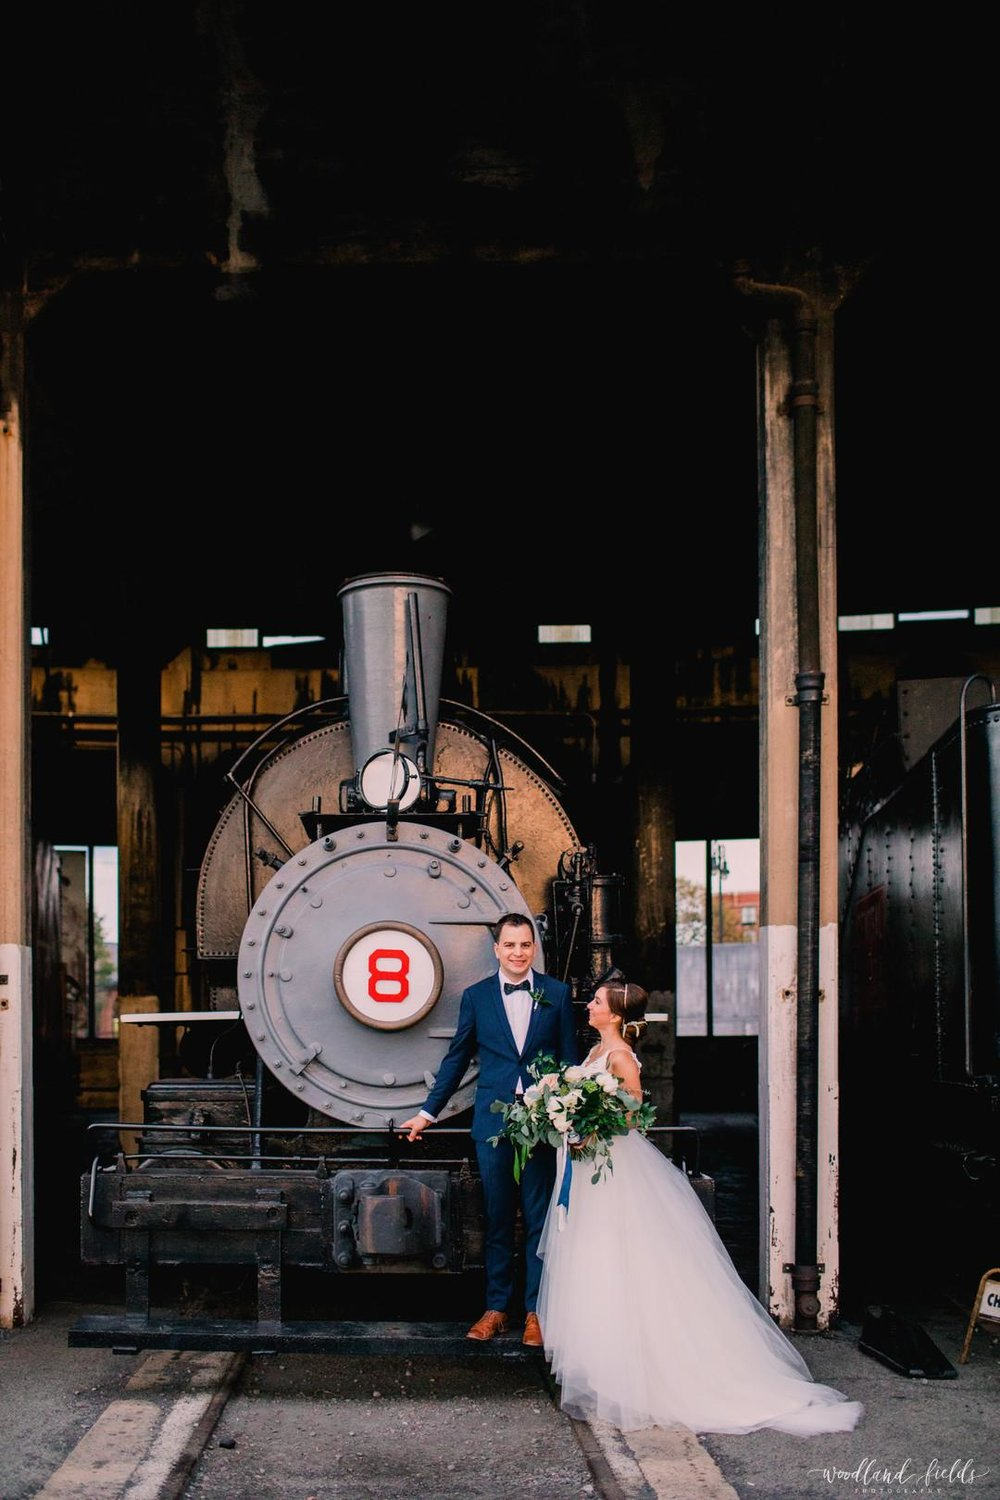 savannah-bridal-shop-ivory-and-beau-bridal-boutique-beth-and-jesse-woodland-fields-photography-georgia-railroad-museum-wedding-25.jpg